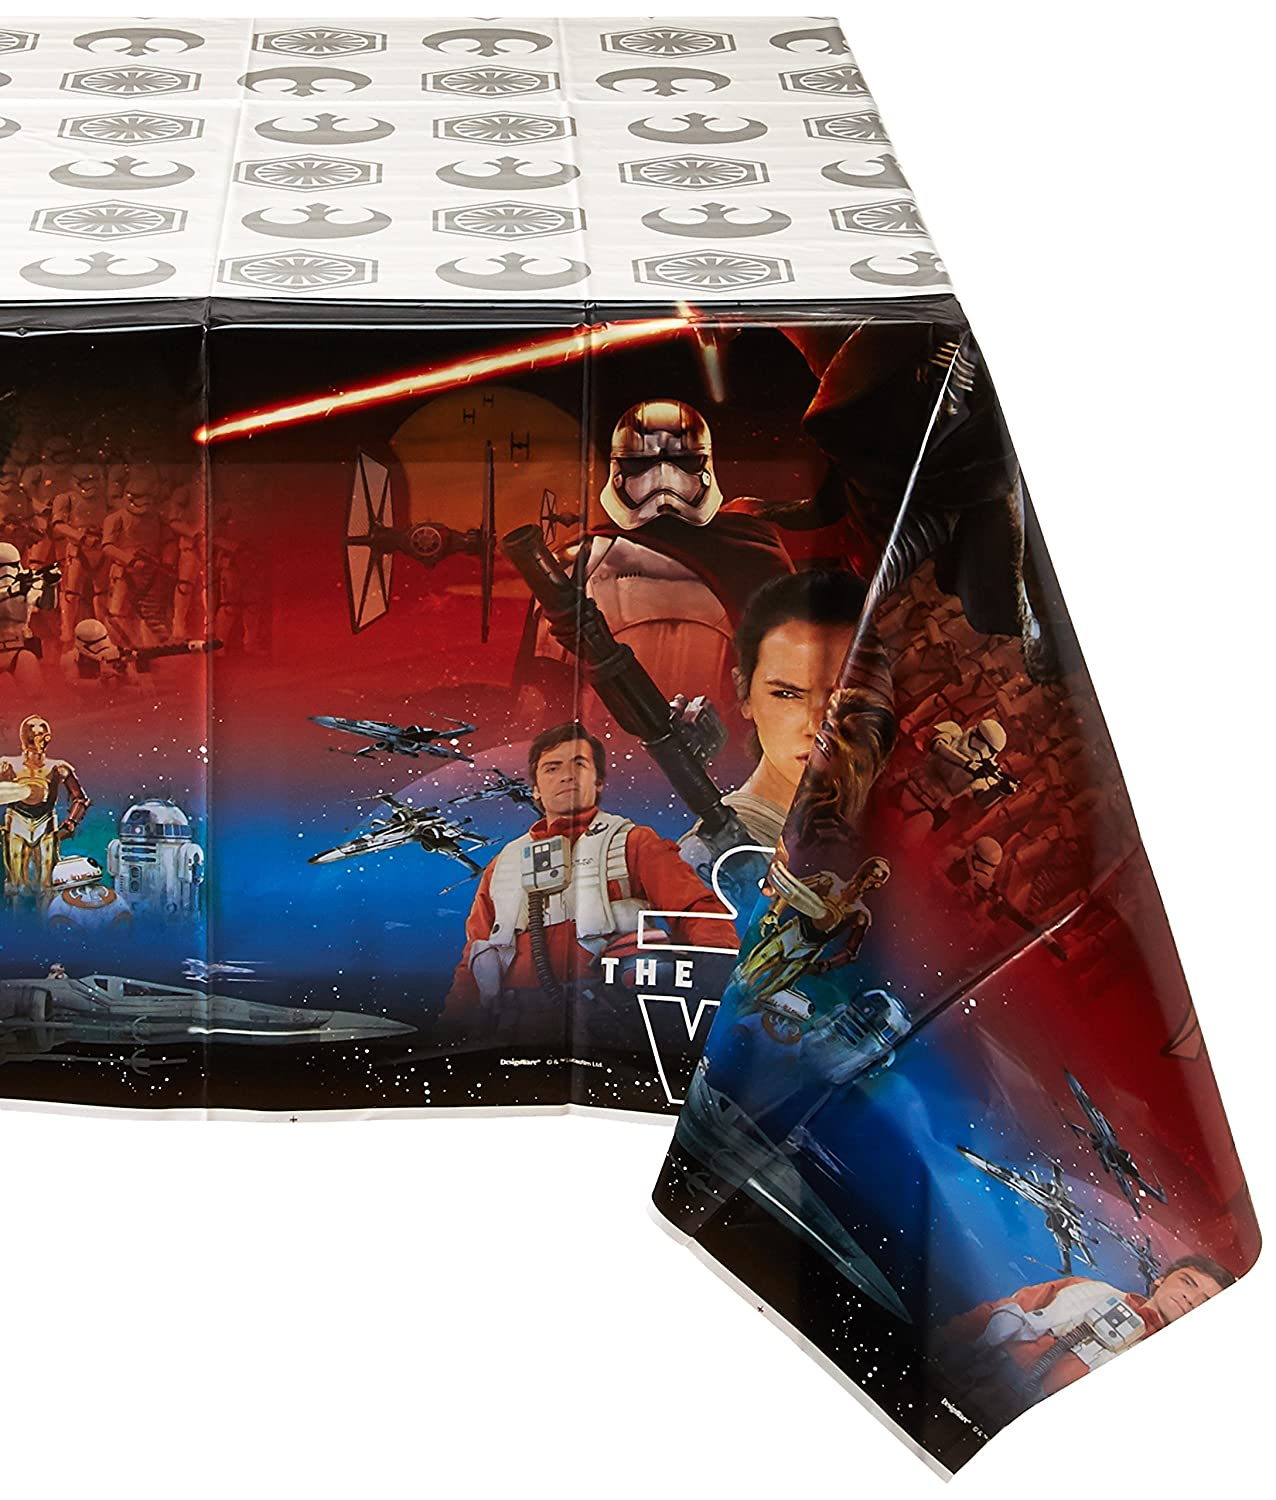 Party Favor Amscan Star Wars Episode VII Plastic Table Cover TradeMart Inc 6 Ct 571506